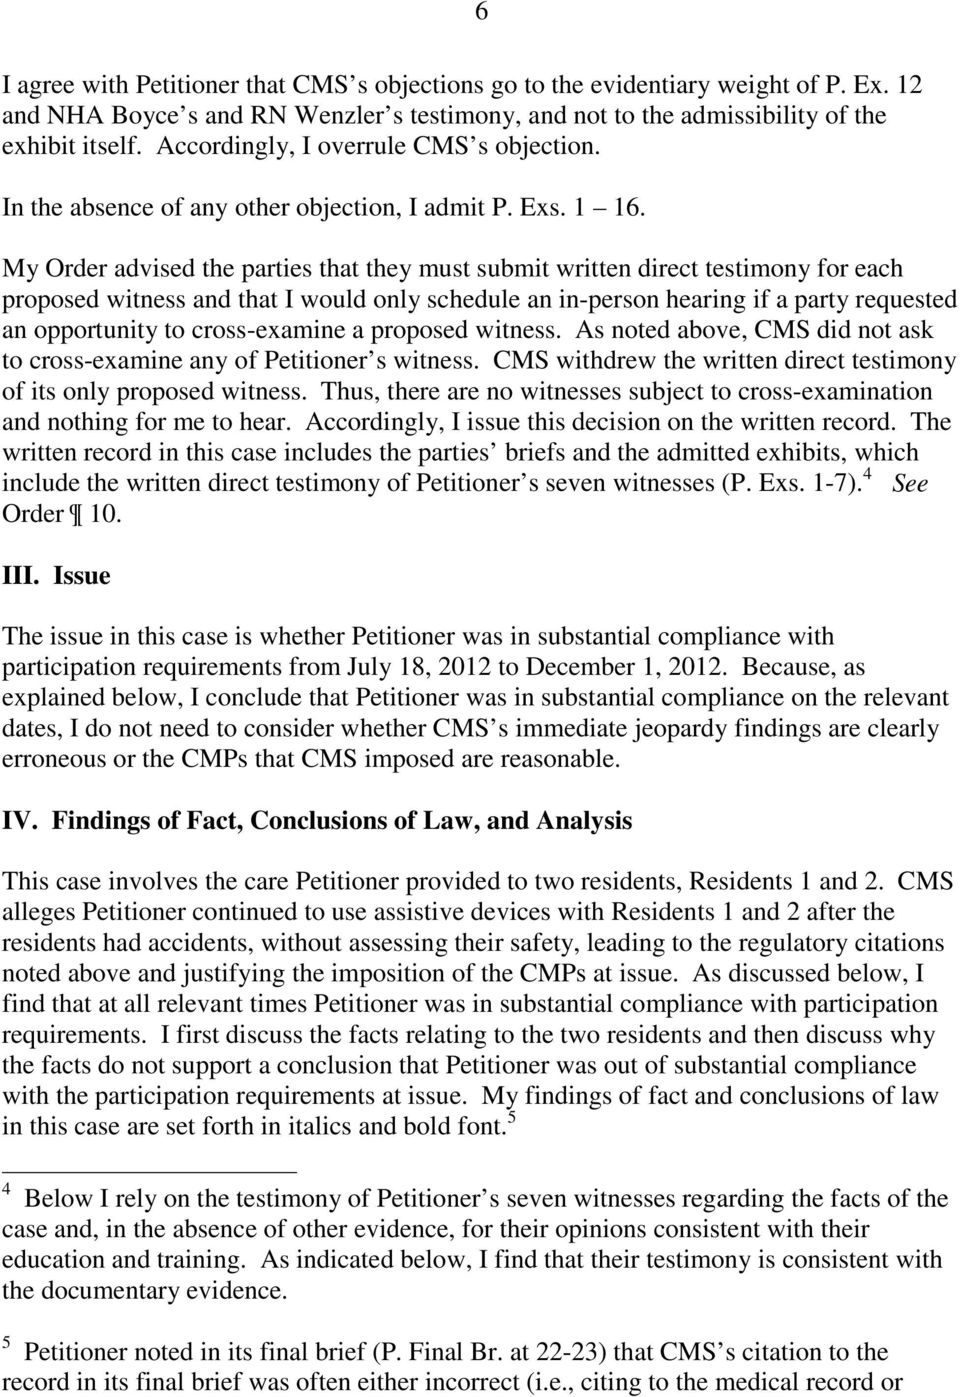 My Order advised the parties that they must submit written direct testimony for each proposed witness and that I would only schedule an in-person hearing if a party requested an opportunity to